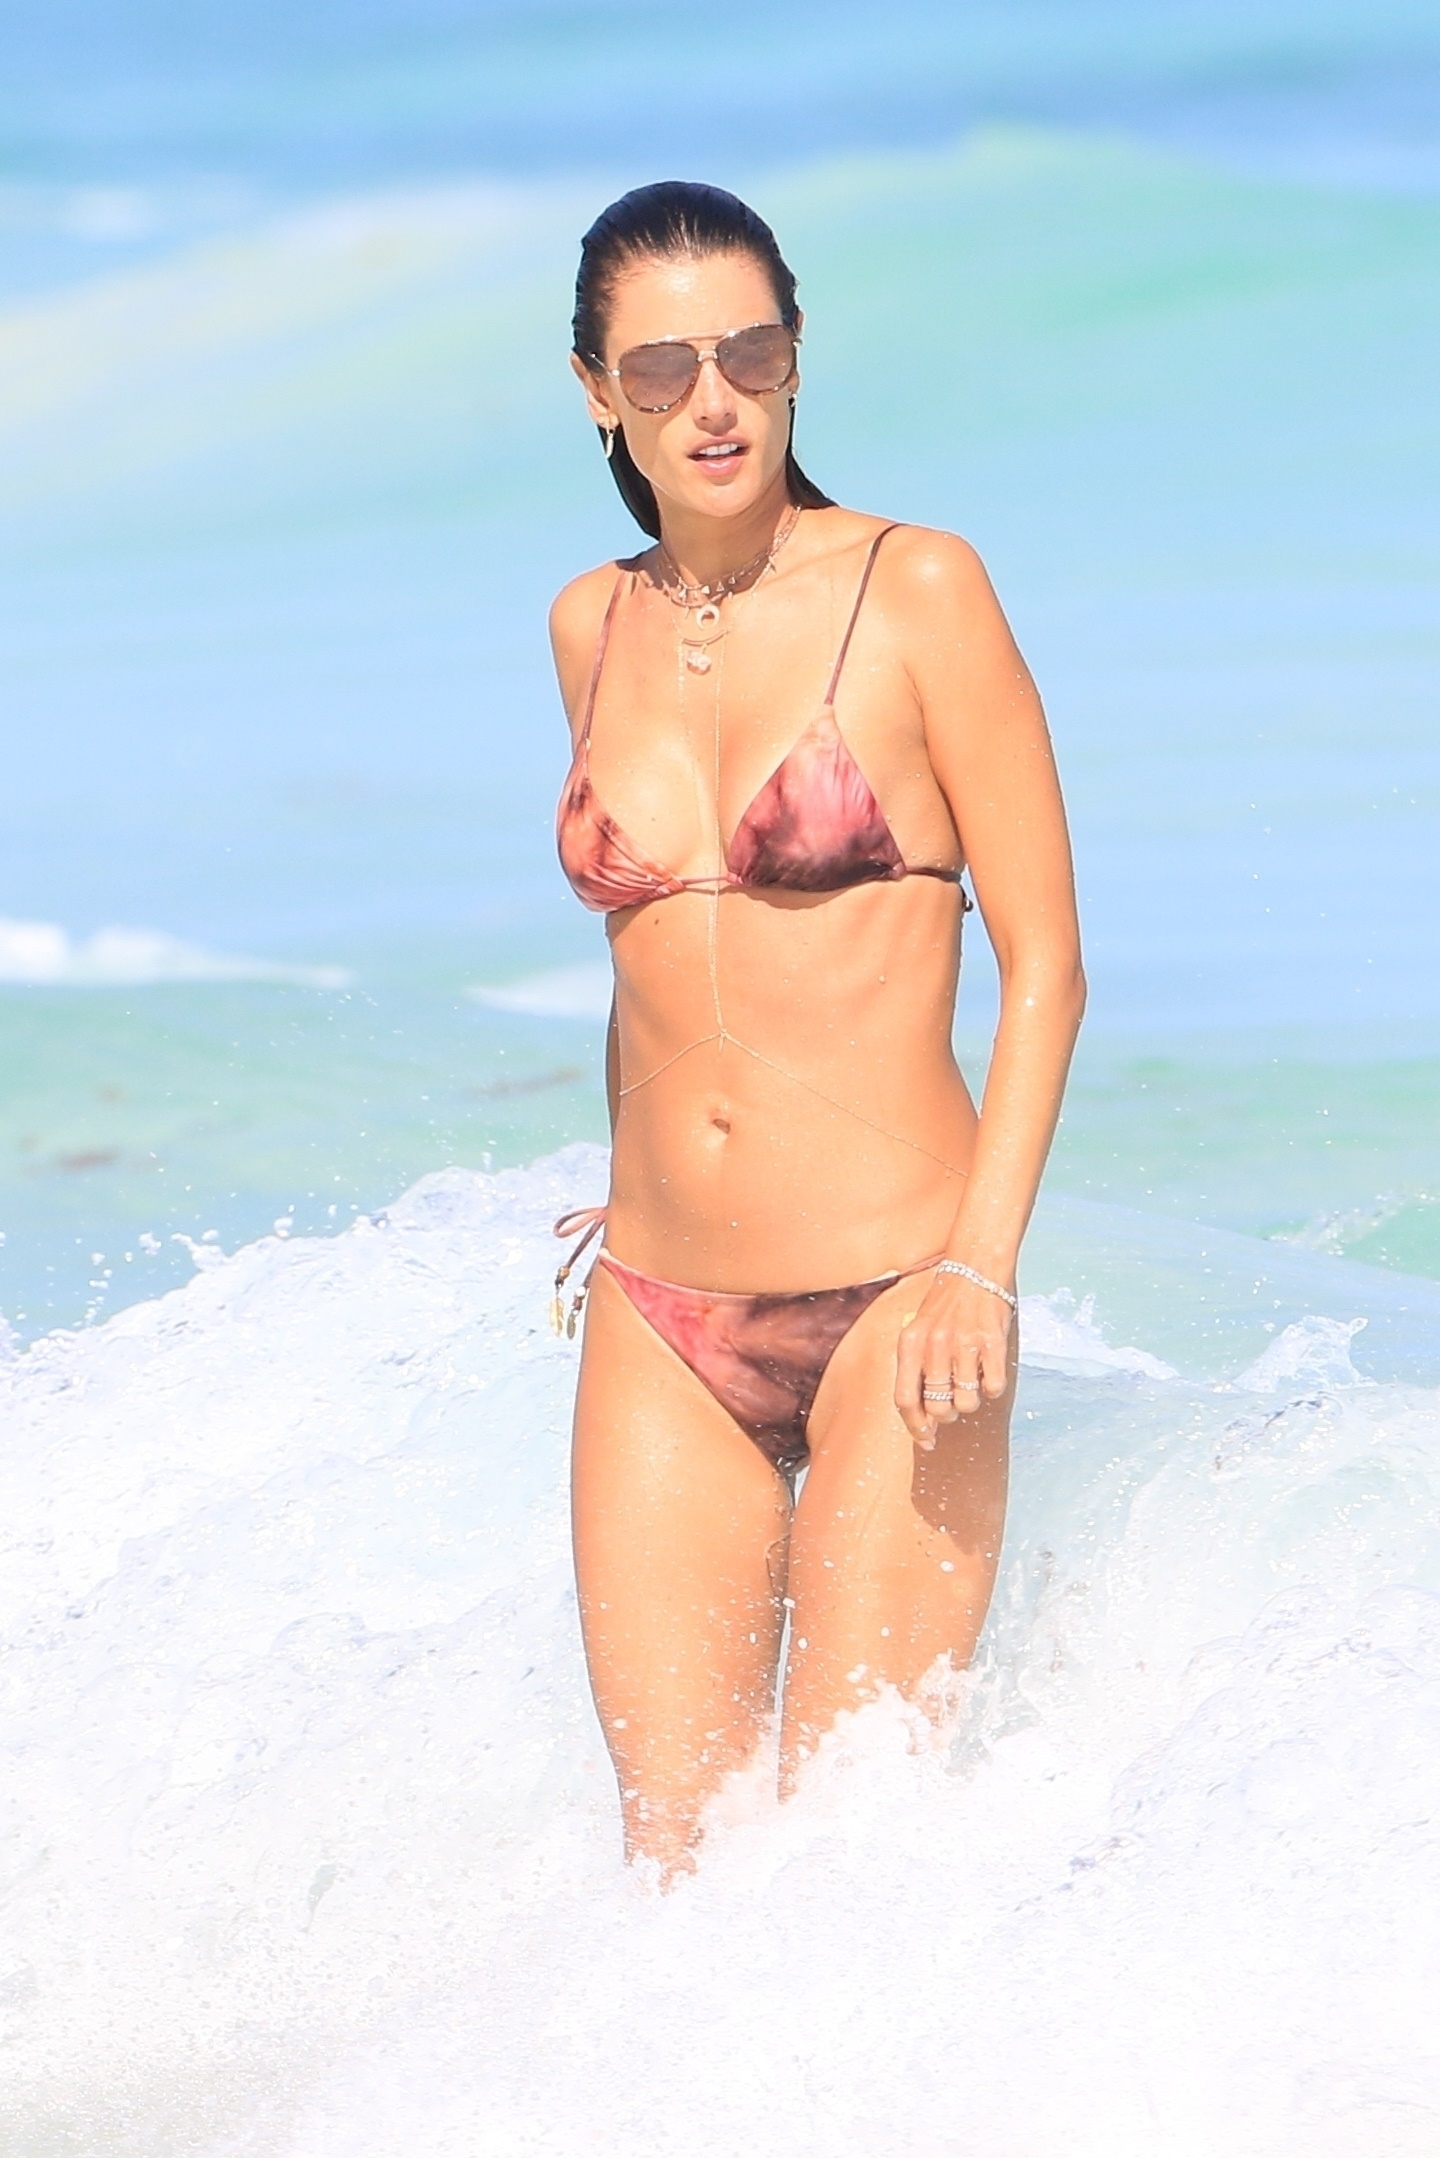 Alessandra Ambrosio was all smiles as she showed off her svelte figure on the beach in Cancun, Mexico, on Feb. 18, 2018.